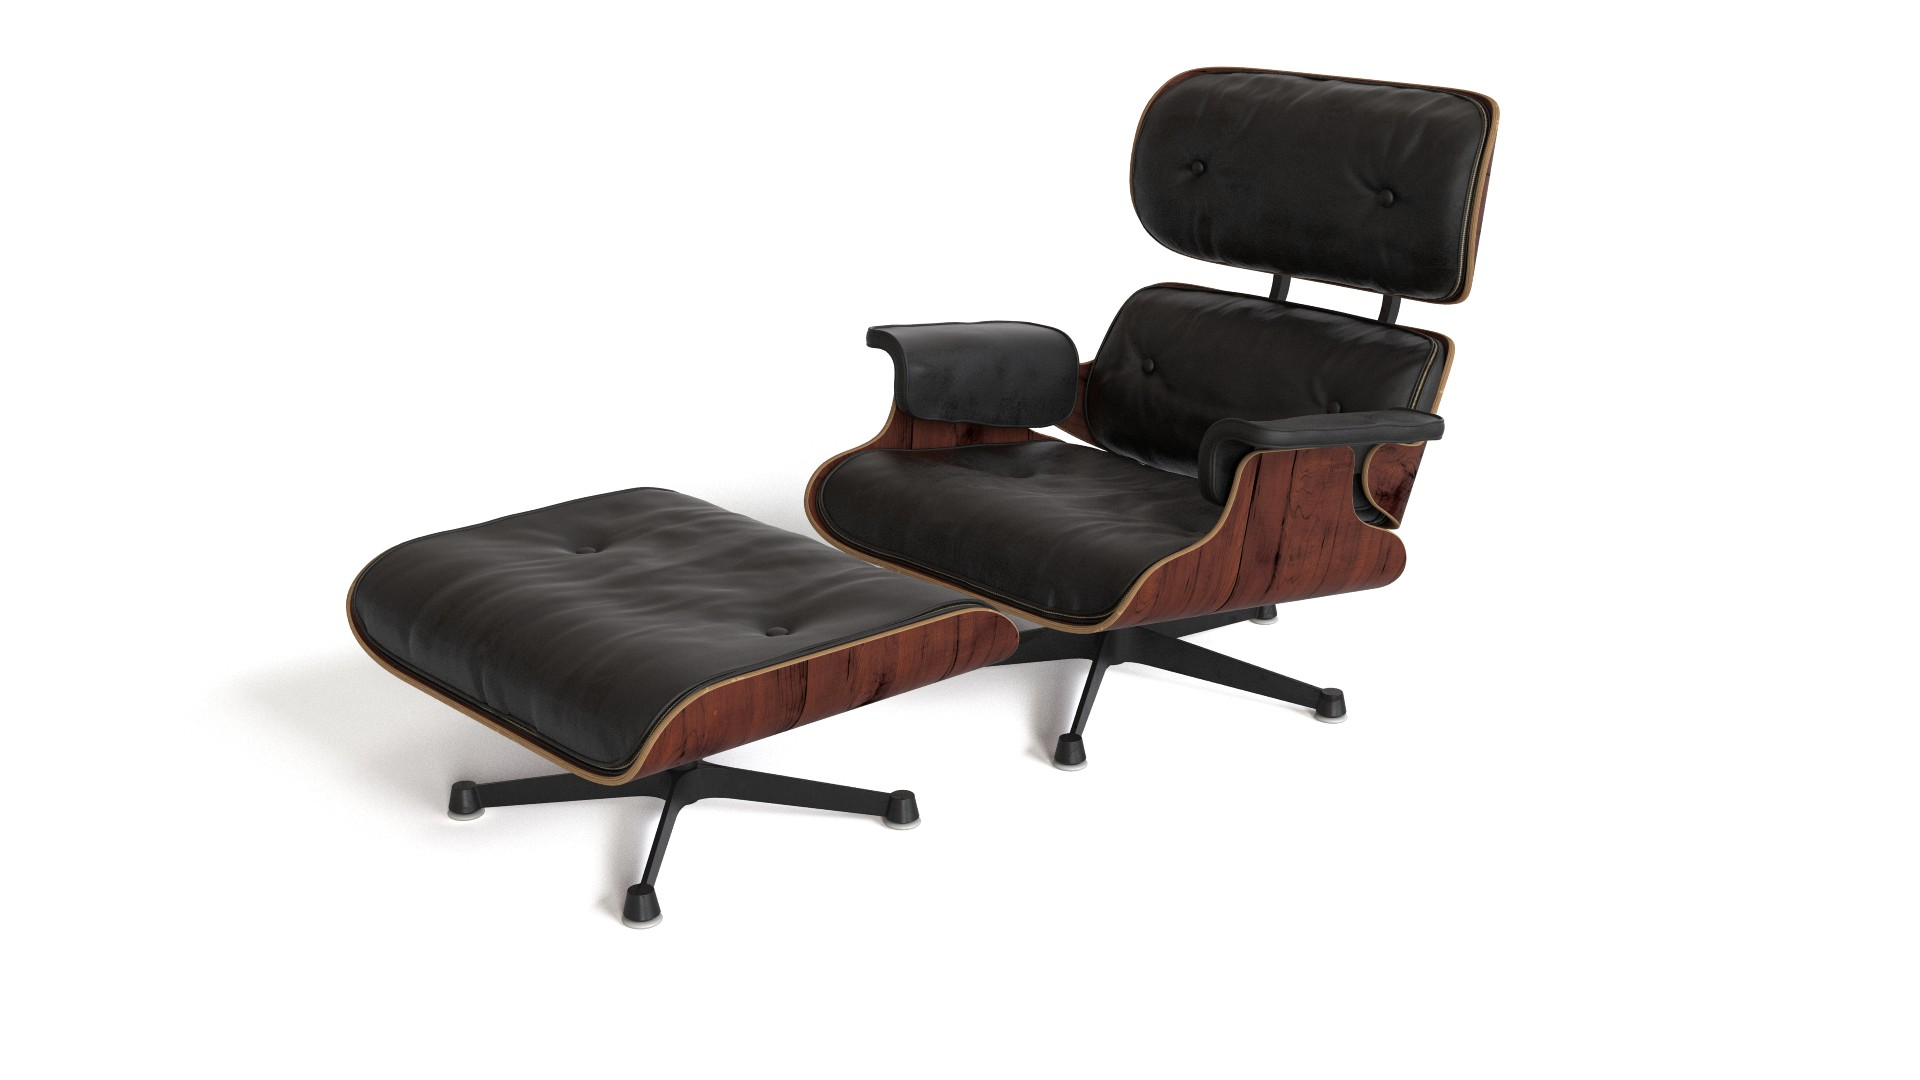 modern plastic chair gold covers for sale eames lounge with ottoman | flyingarchitecture